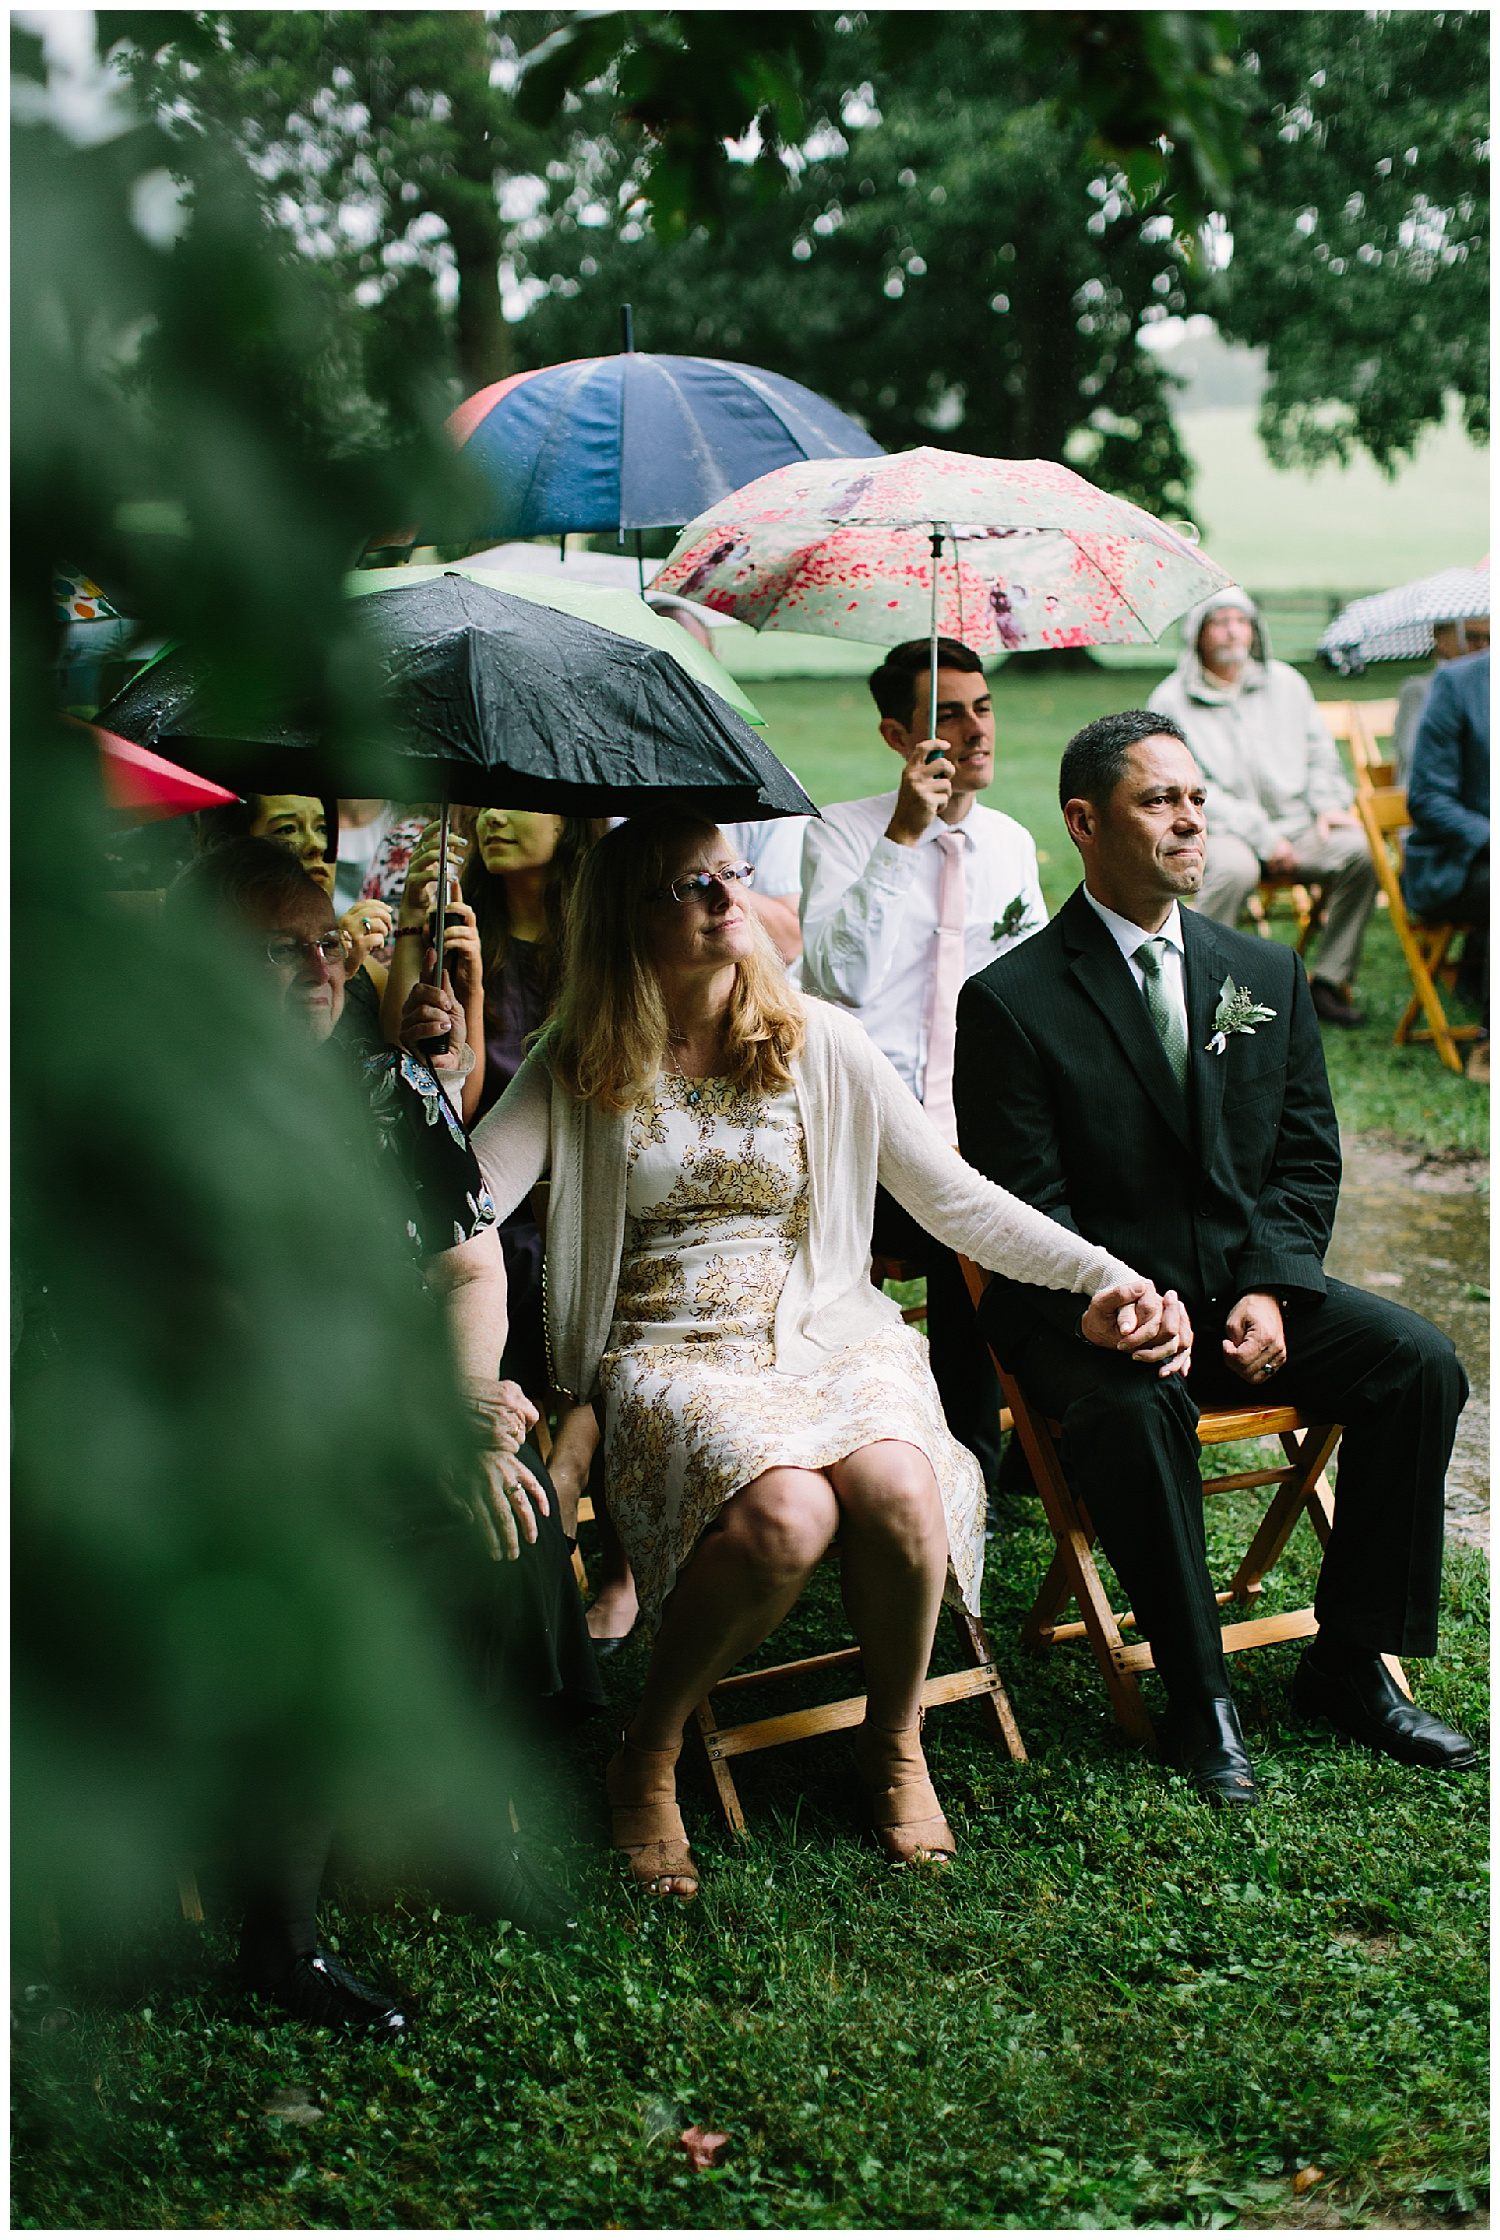 trent.and.kendra.photography.wedding.louisville-105.jpg